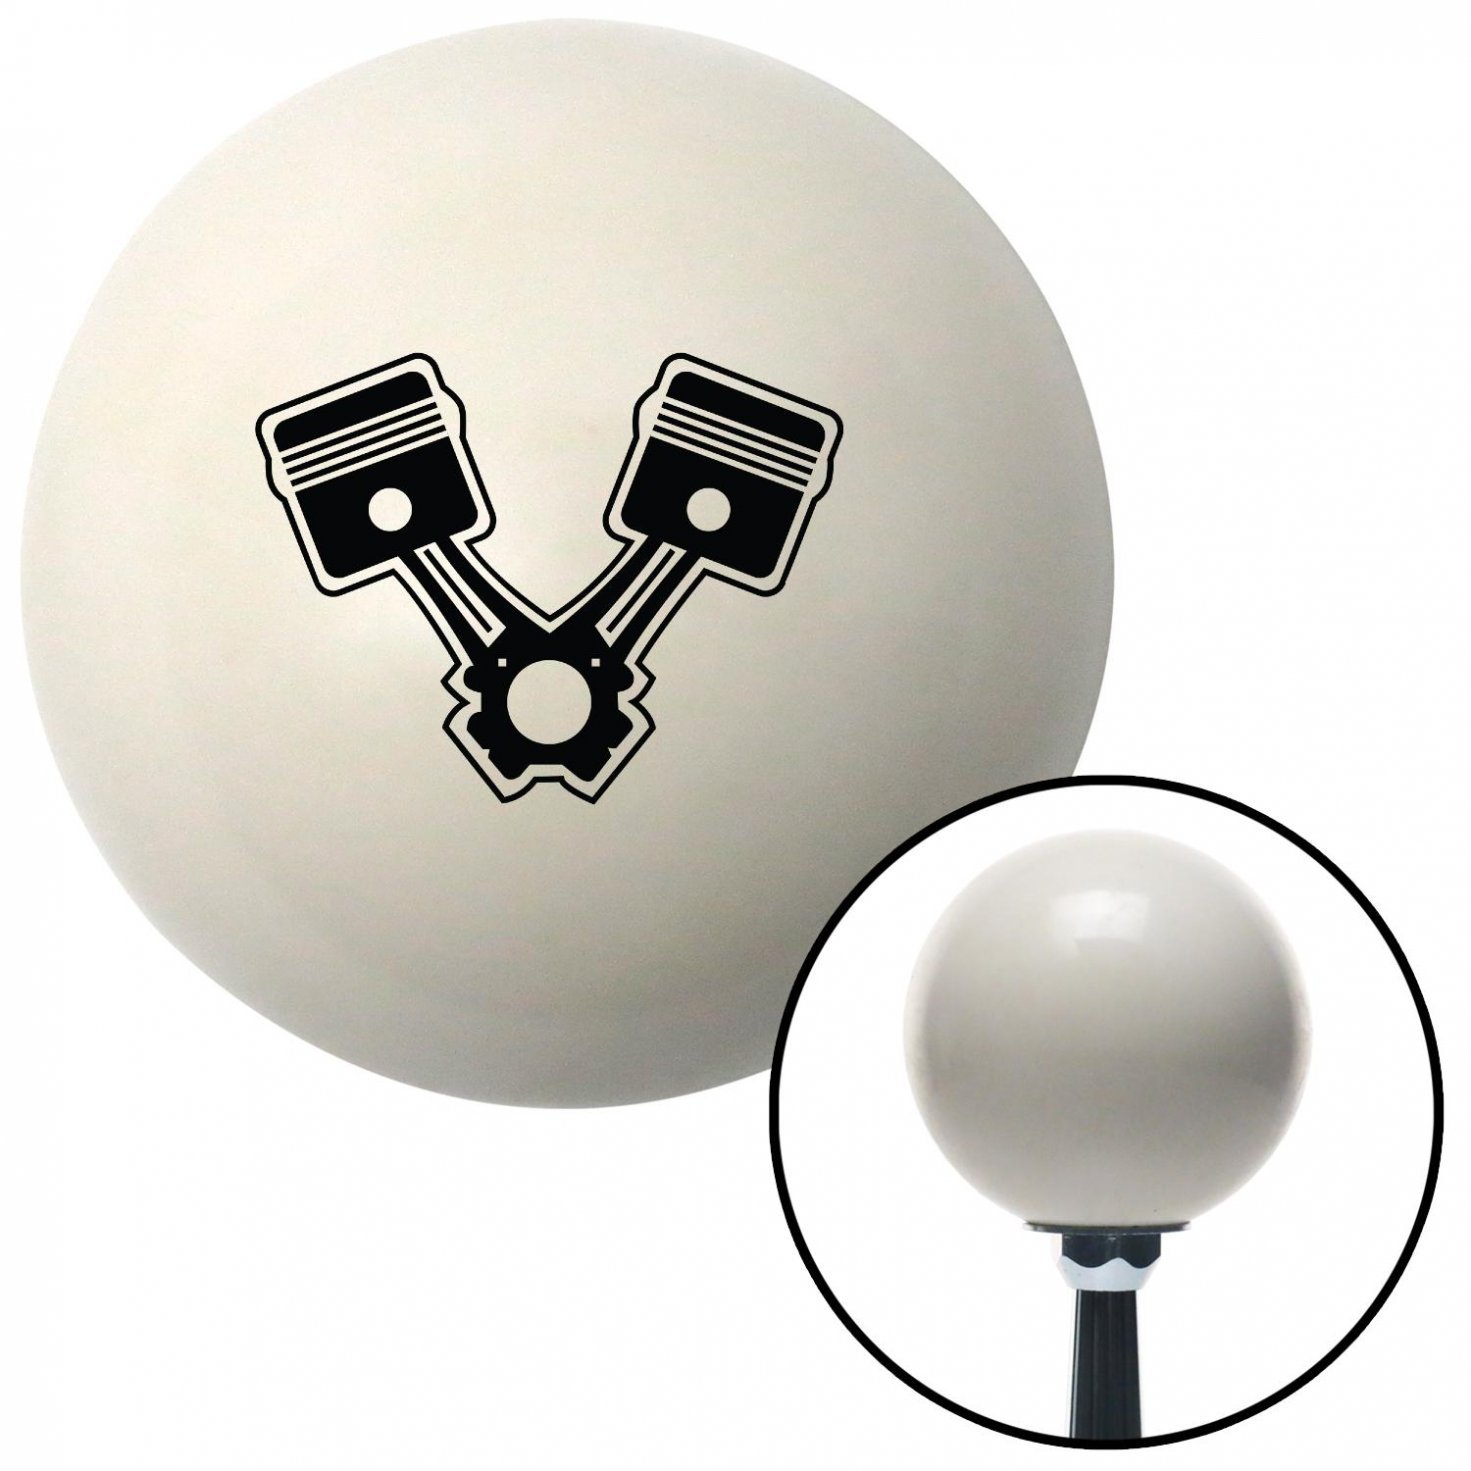 Black 2 Pistons American Shifter 30078 Ivory Shift Knob with 16mm x 1.5 Insert